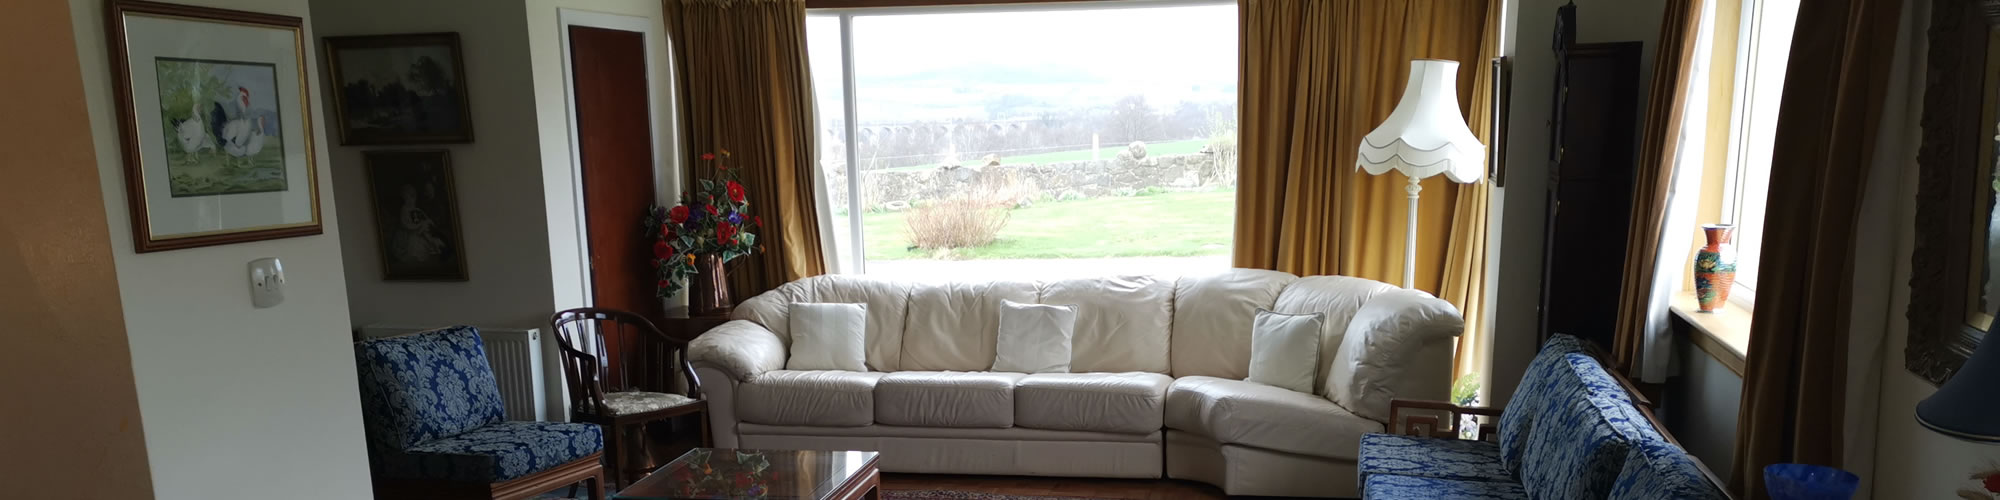 Bed and Breakfast Linlithgow